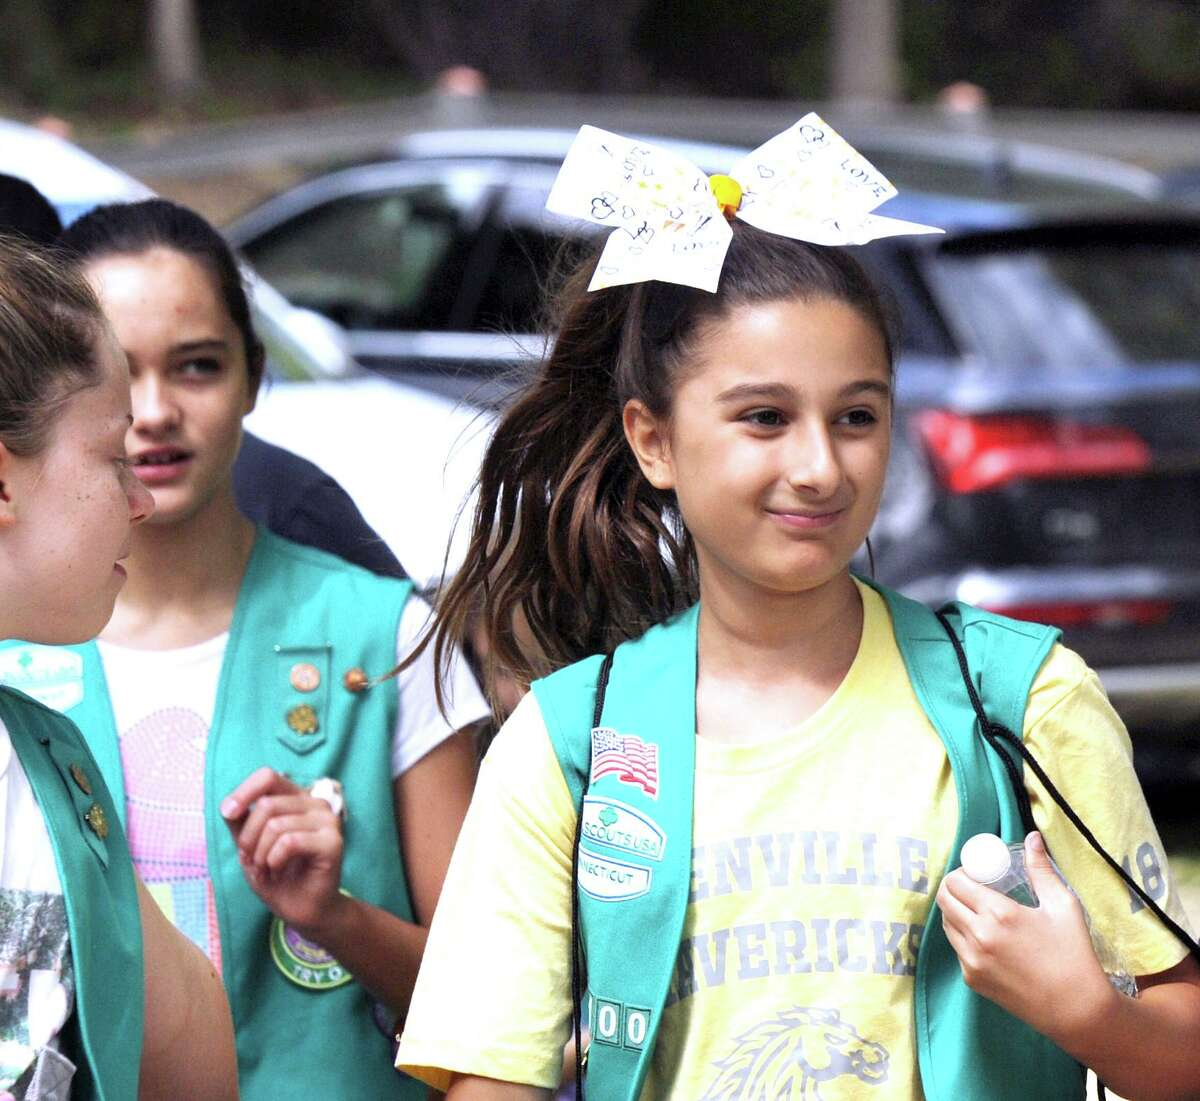 Greenwich Girl Scout Carly Cernigliaro, 11, a member of Greenwich troop 50100 attended the